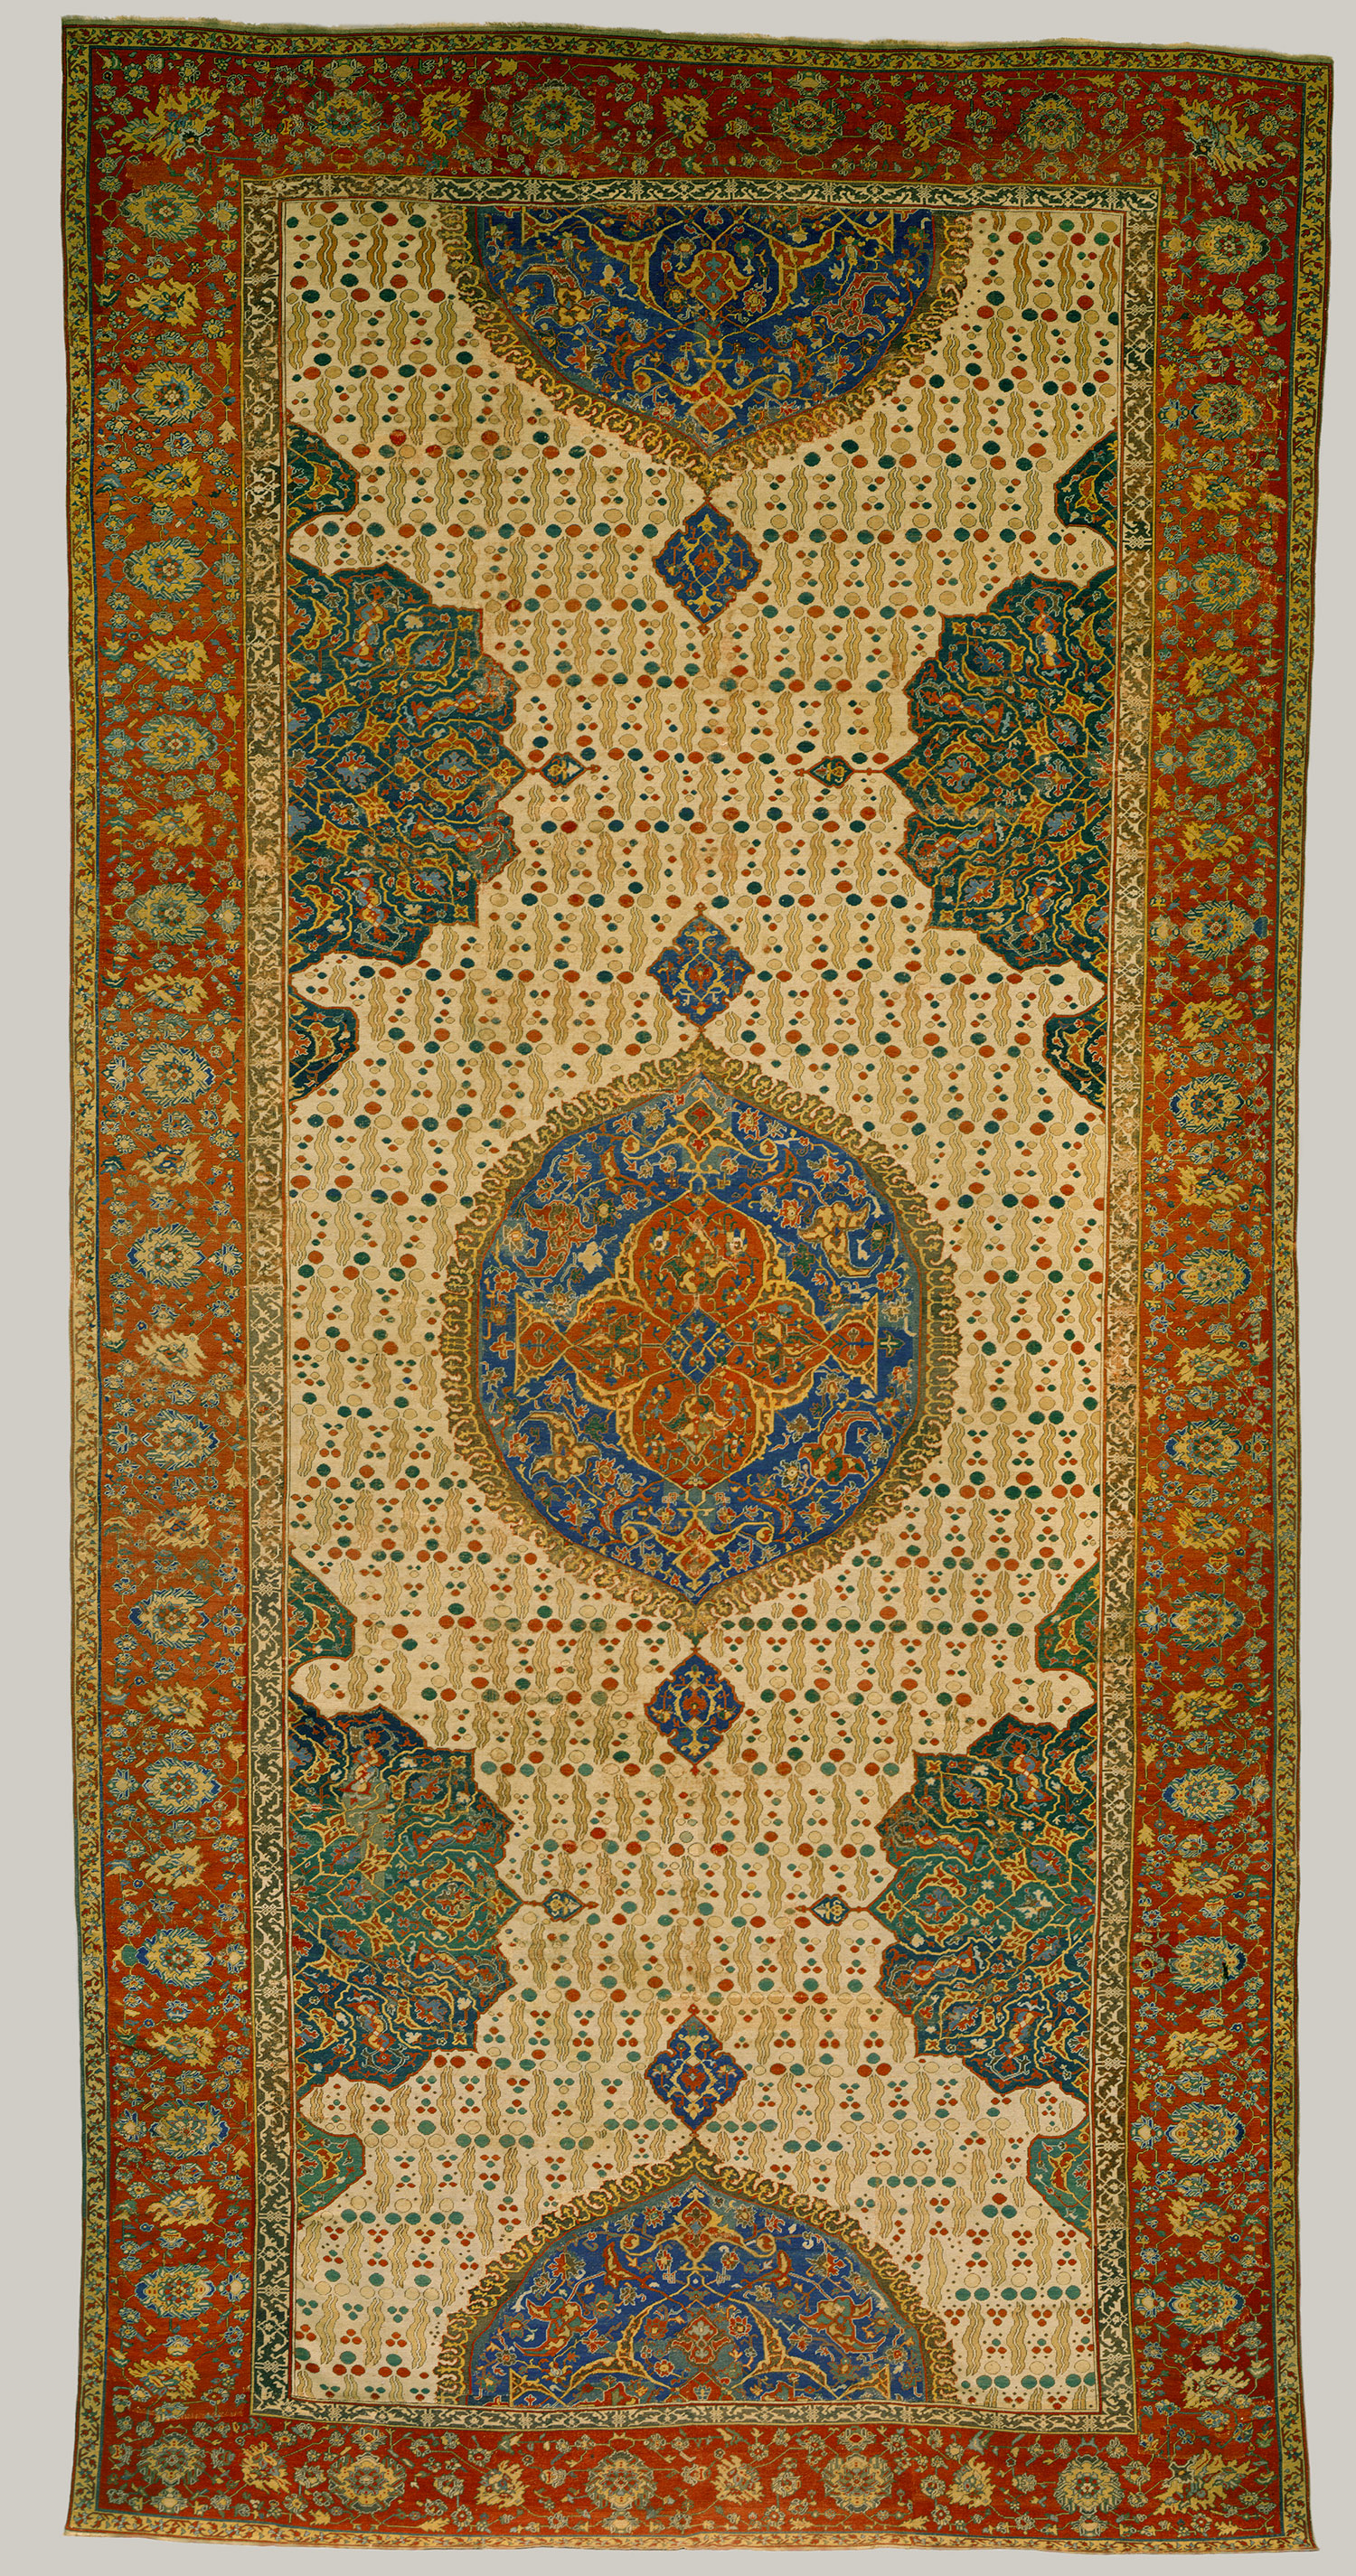 Carpets From The Islamic World 1600 1800 Thematic Essay